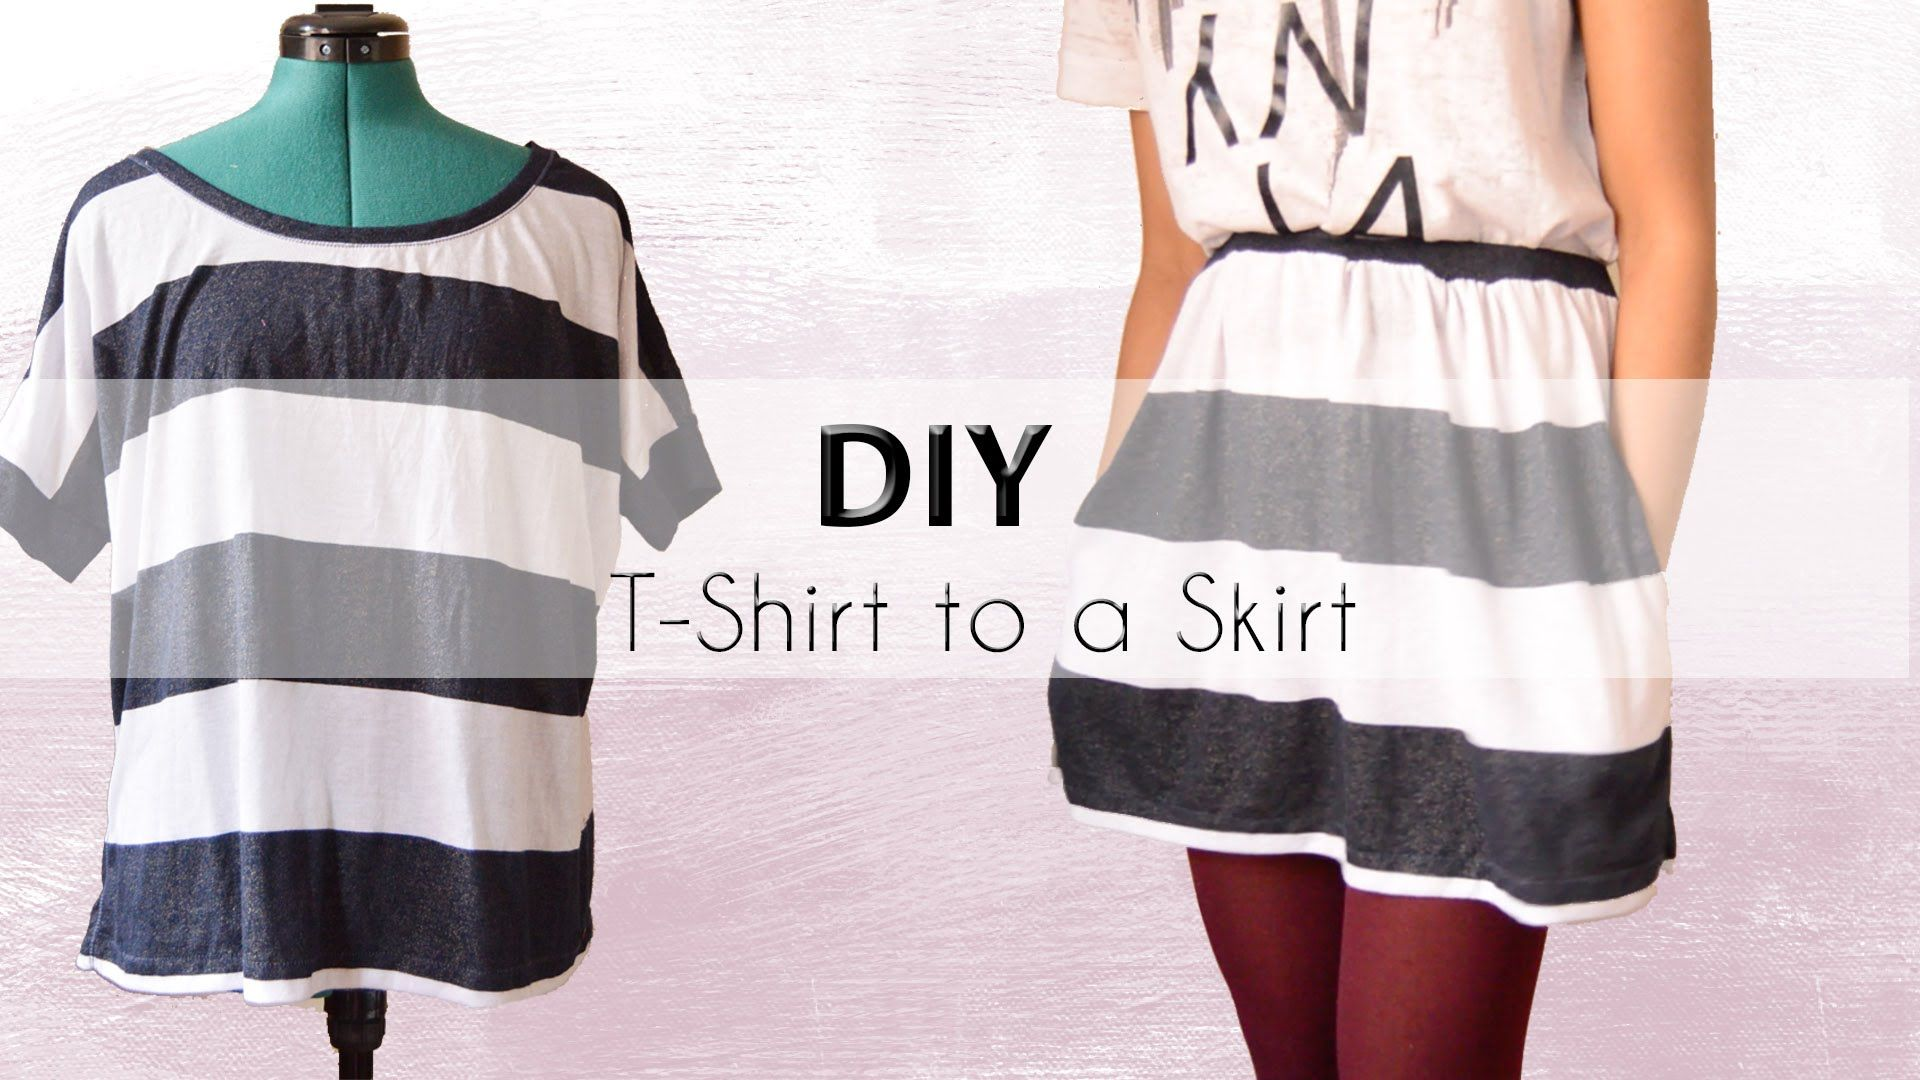 Diy Transformation Shirt Into A Skirt With Pockets Diy Skirt How To Make Skirt Diy Clothes Alterations